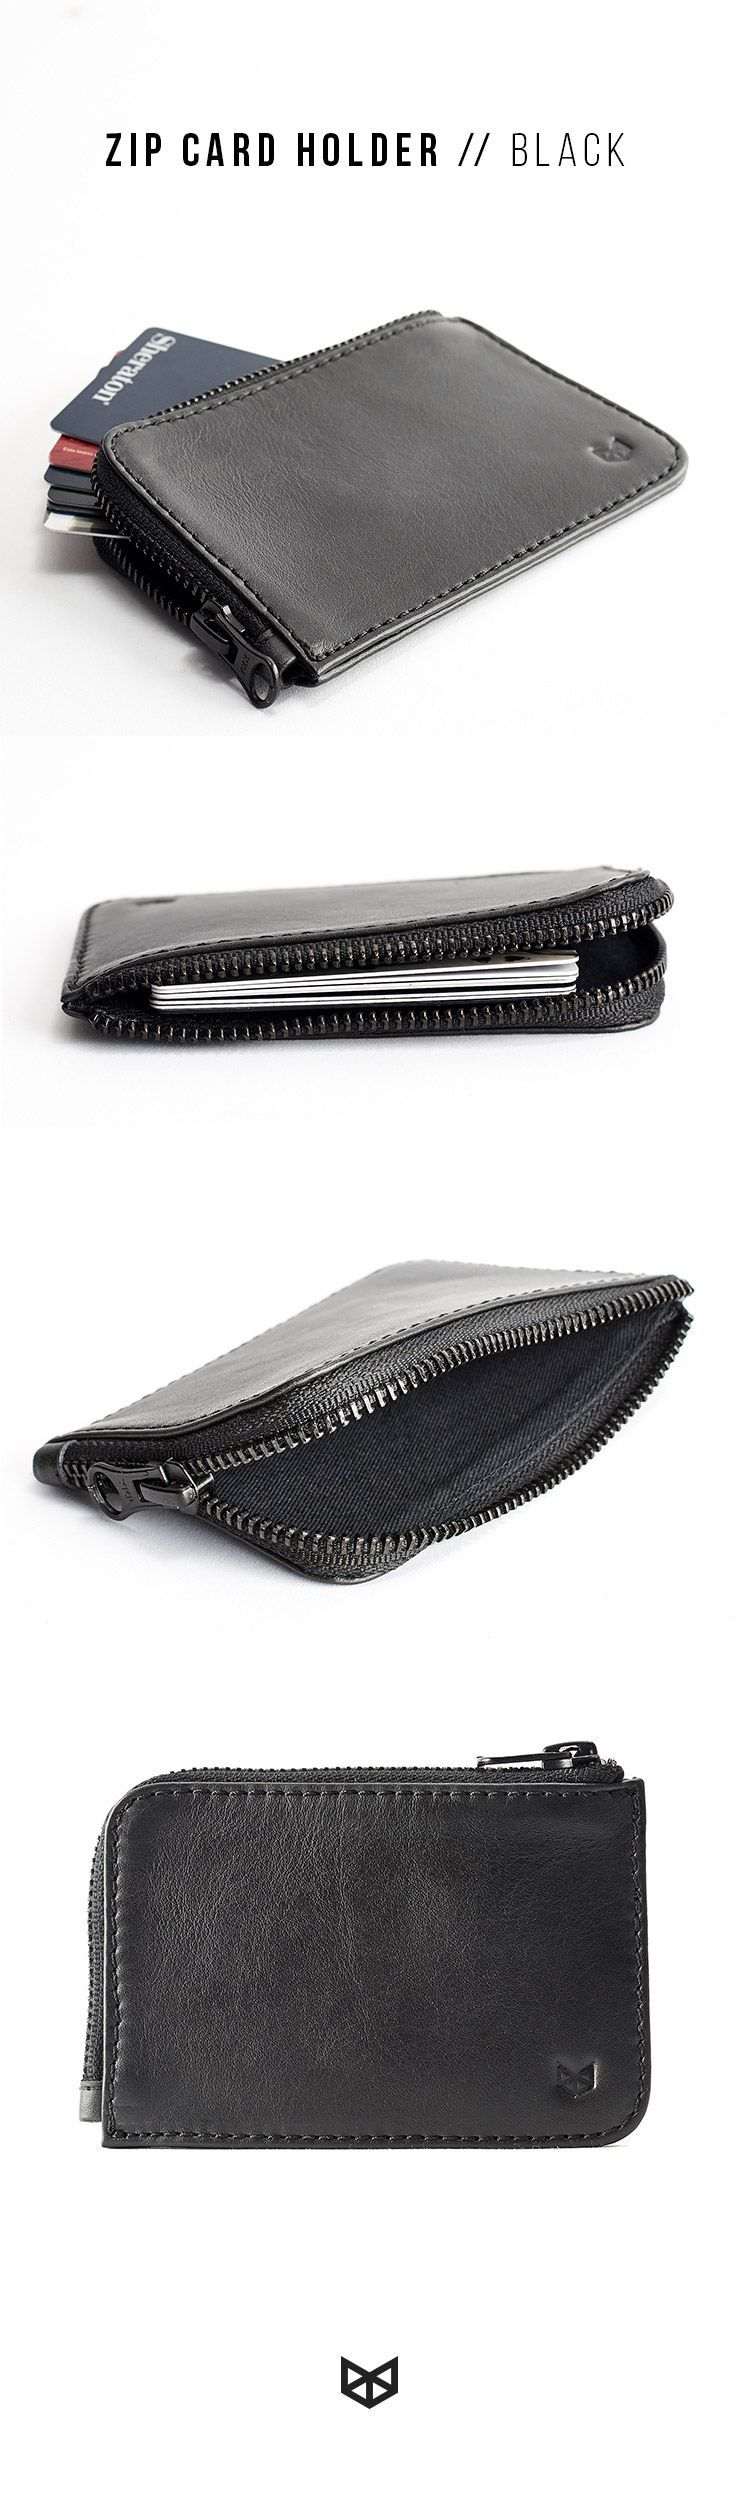 If you are looking for a valentine's mens gifts, this zip leather card holder made by hand is the perfect accessory to give to your boyfriend or to that special someone. Make it a special gift engraving initials or a full name on it.